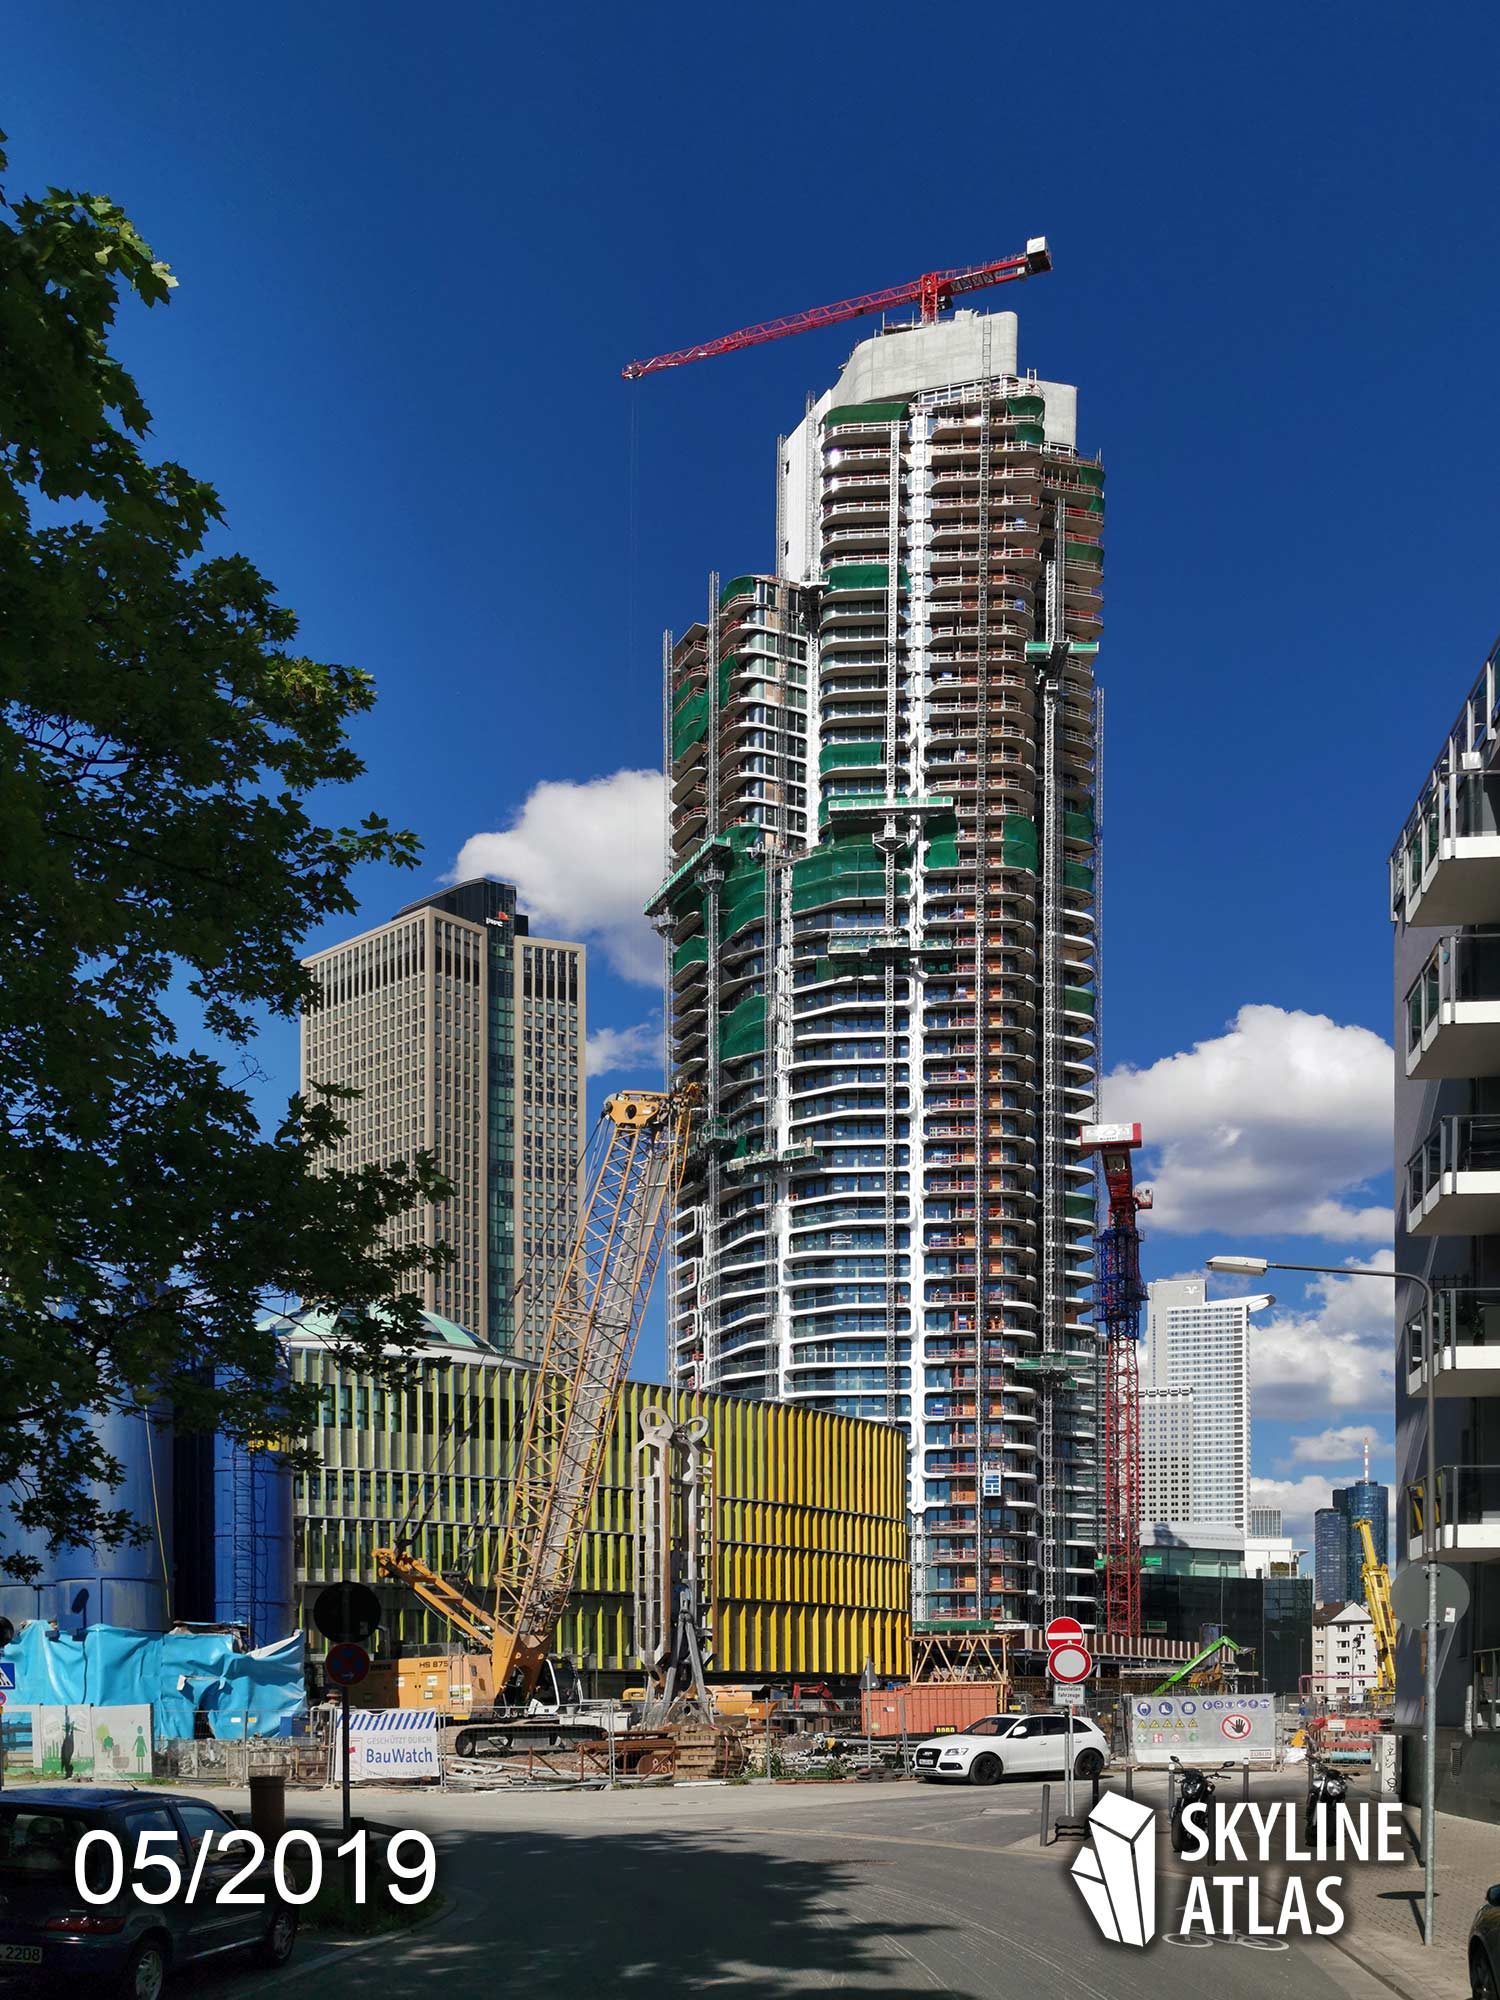 Grand Tower in the Europaviertel Frankfurt, Germany - apartments - condo tower - skyscraper - under construction in May 2019